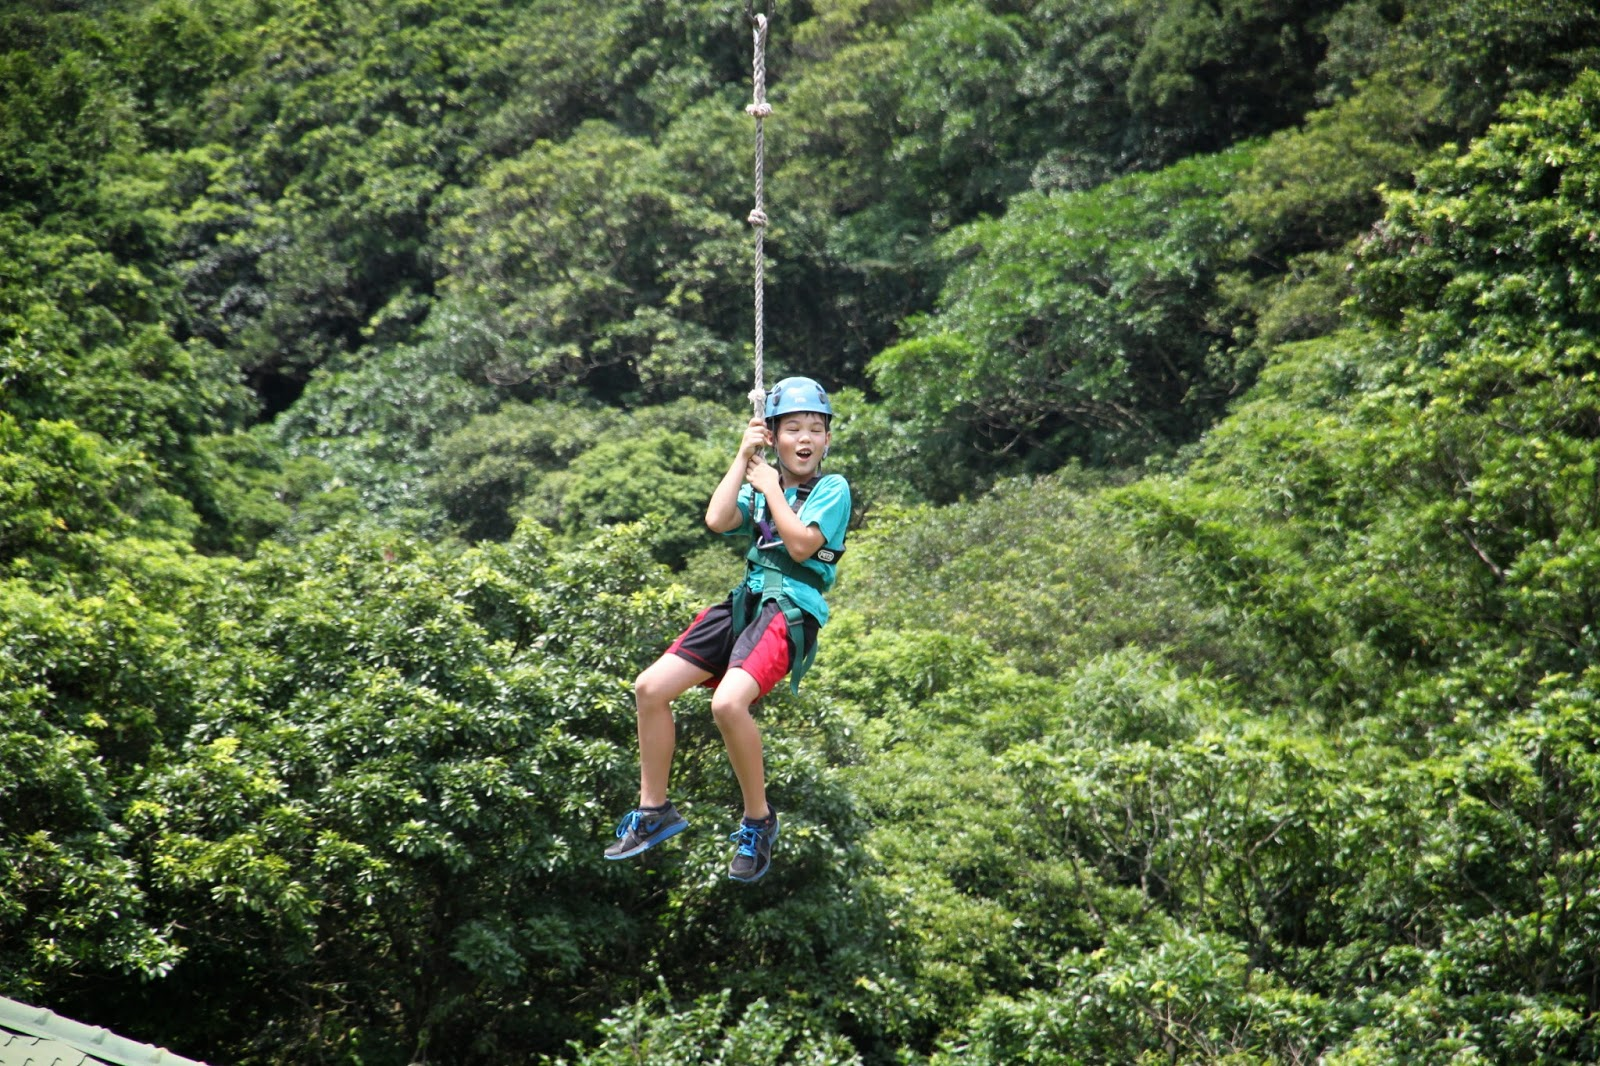 Camp Taiwan review